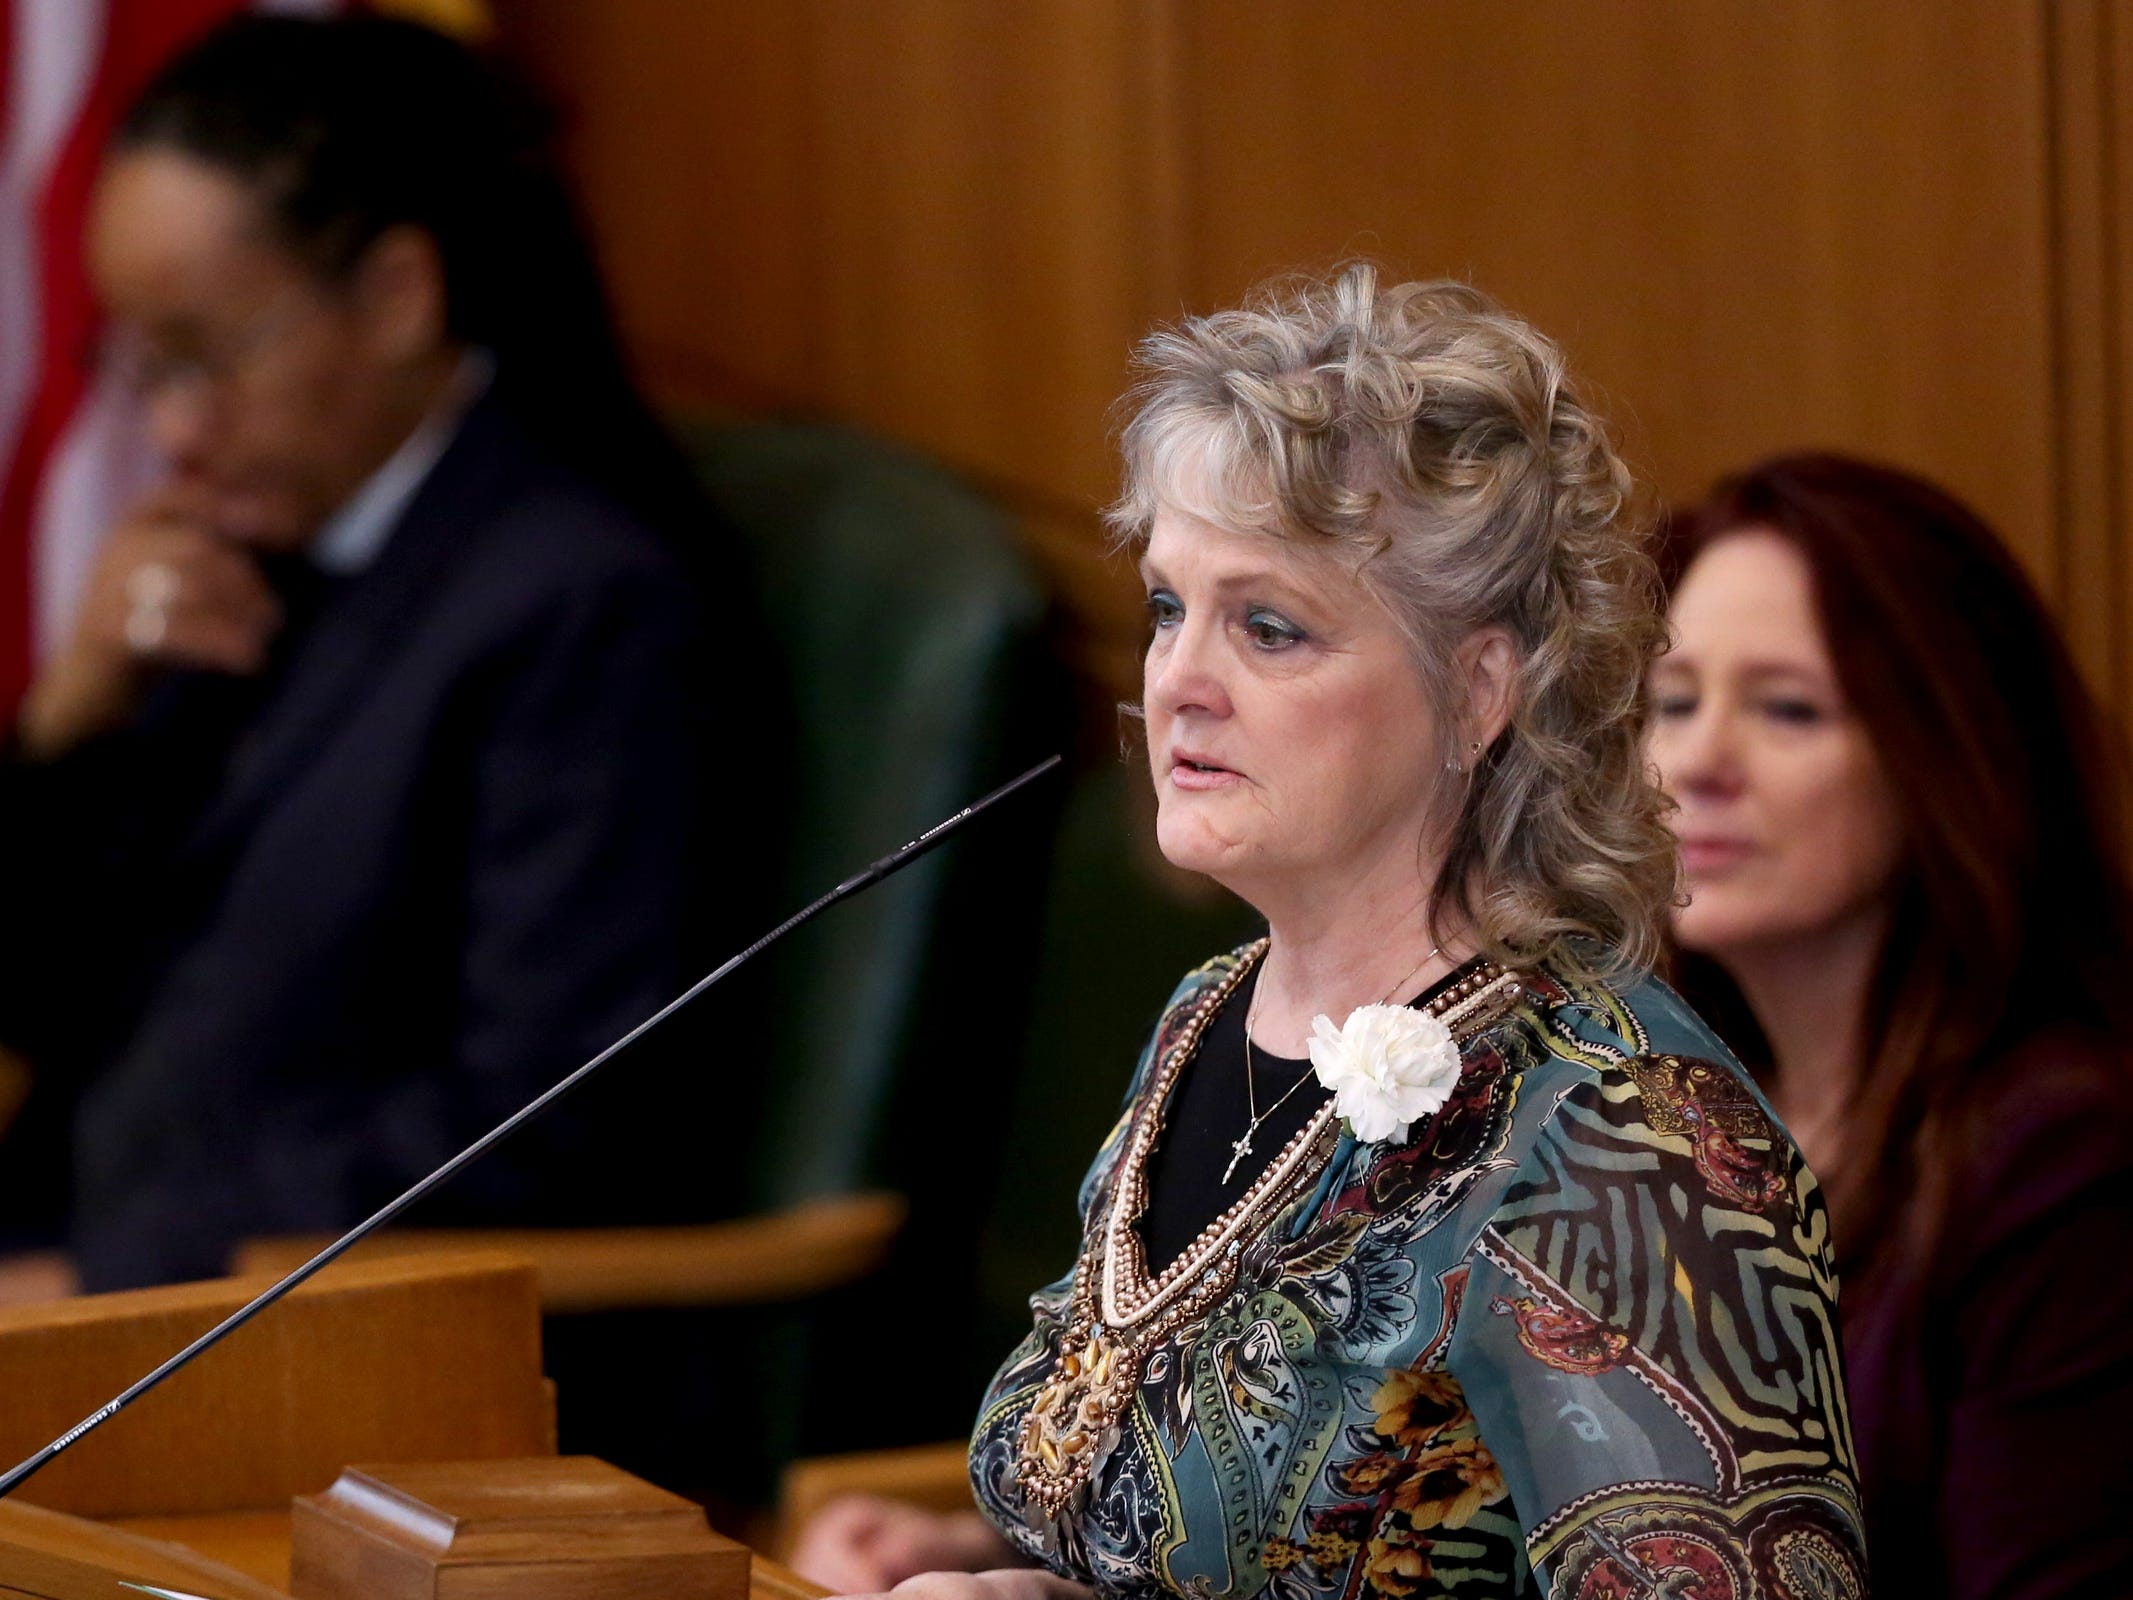 Leslie Cummings, the Acting Secretary of State, speaks during the state funeral for Secretary of State Dennis Richardson at the Oregon State Capitol in Salem on Wednesday, March 6, 2019.